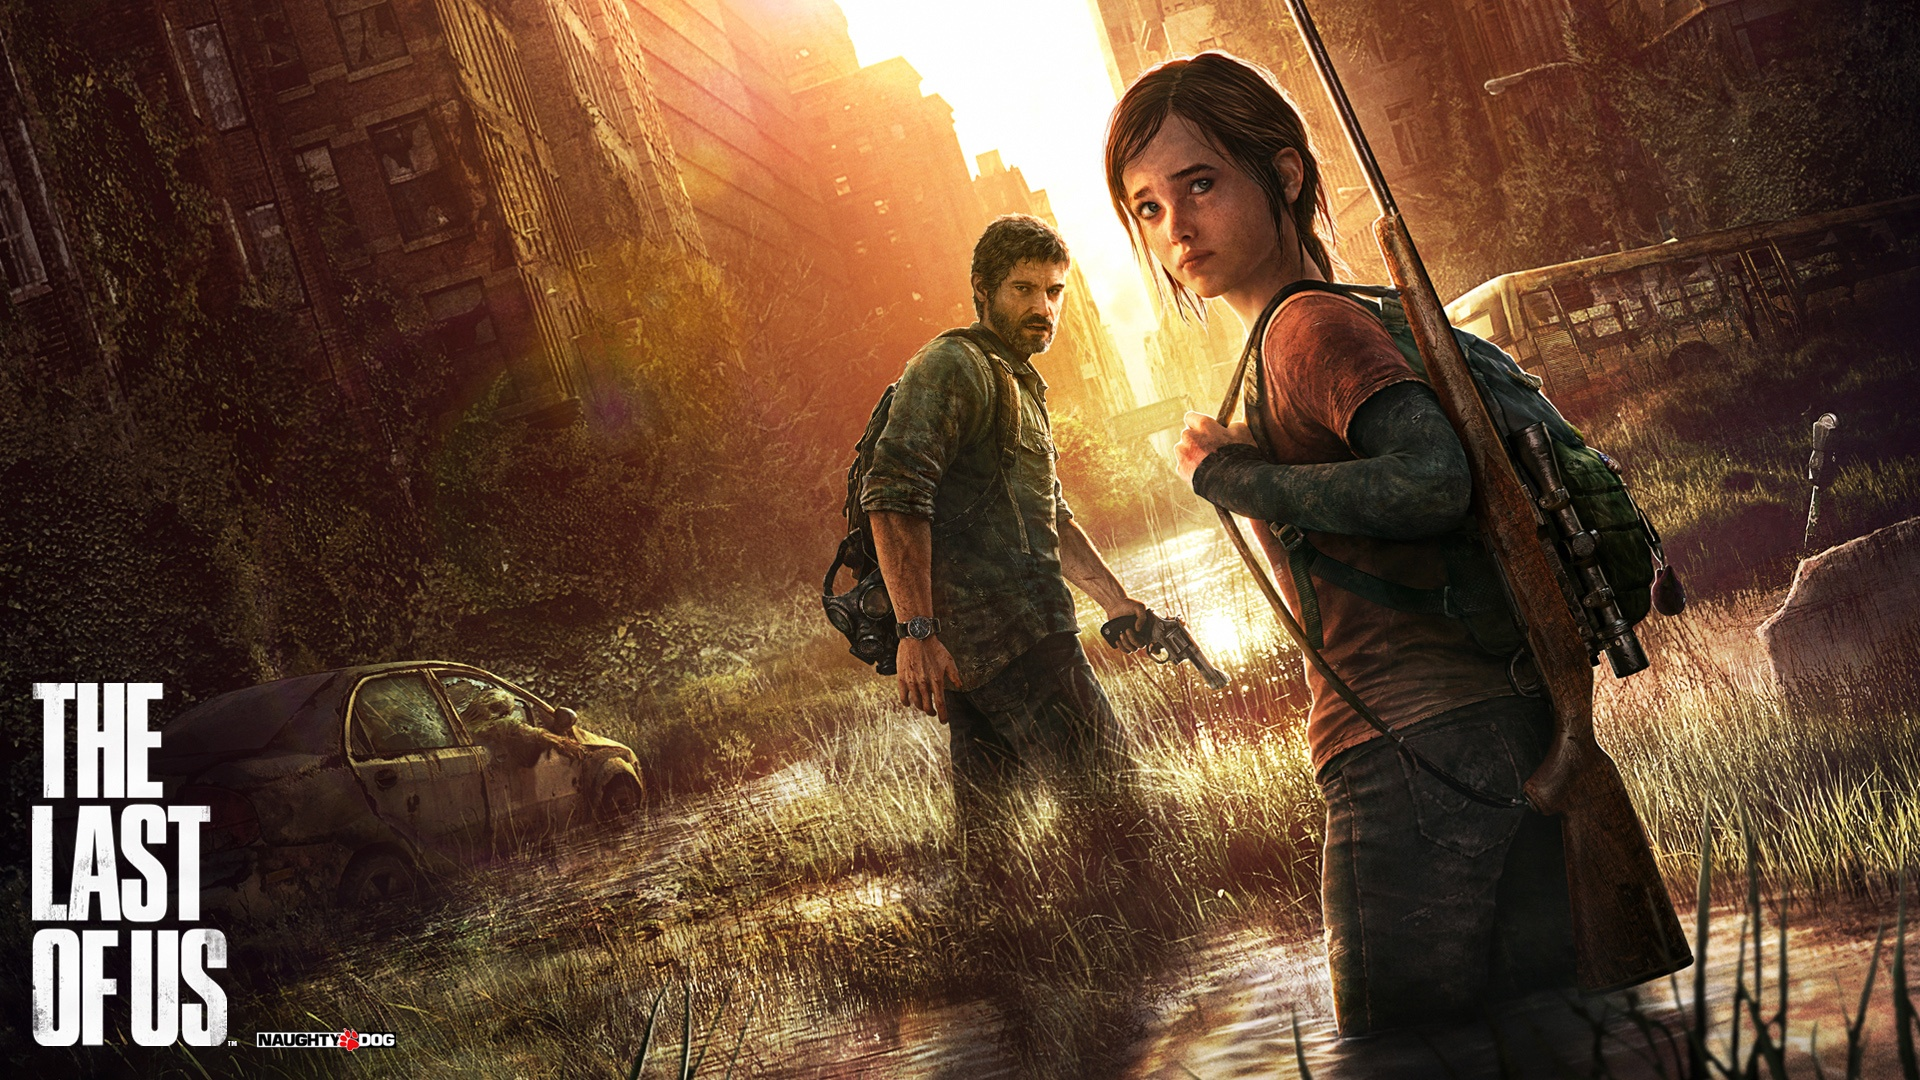 The Last of Us - 01